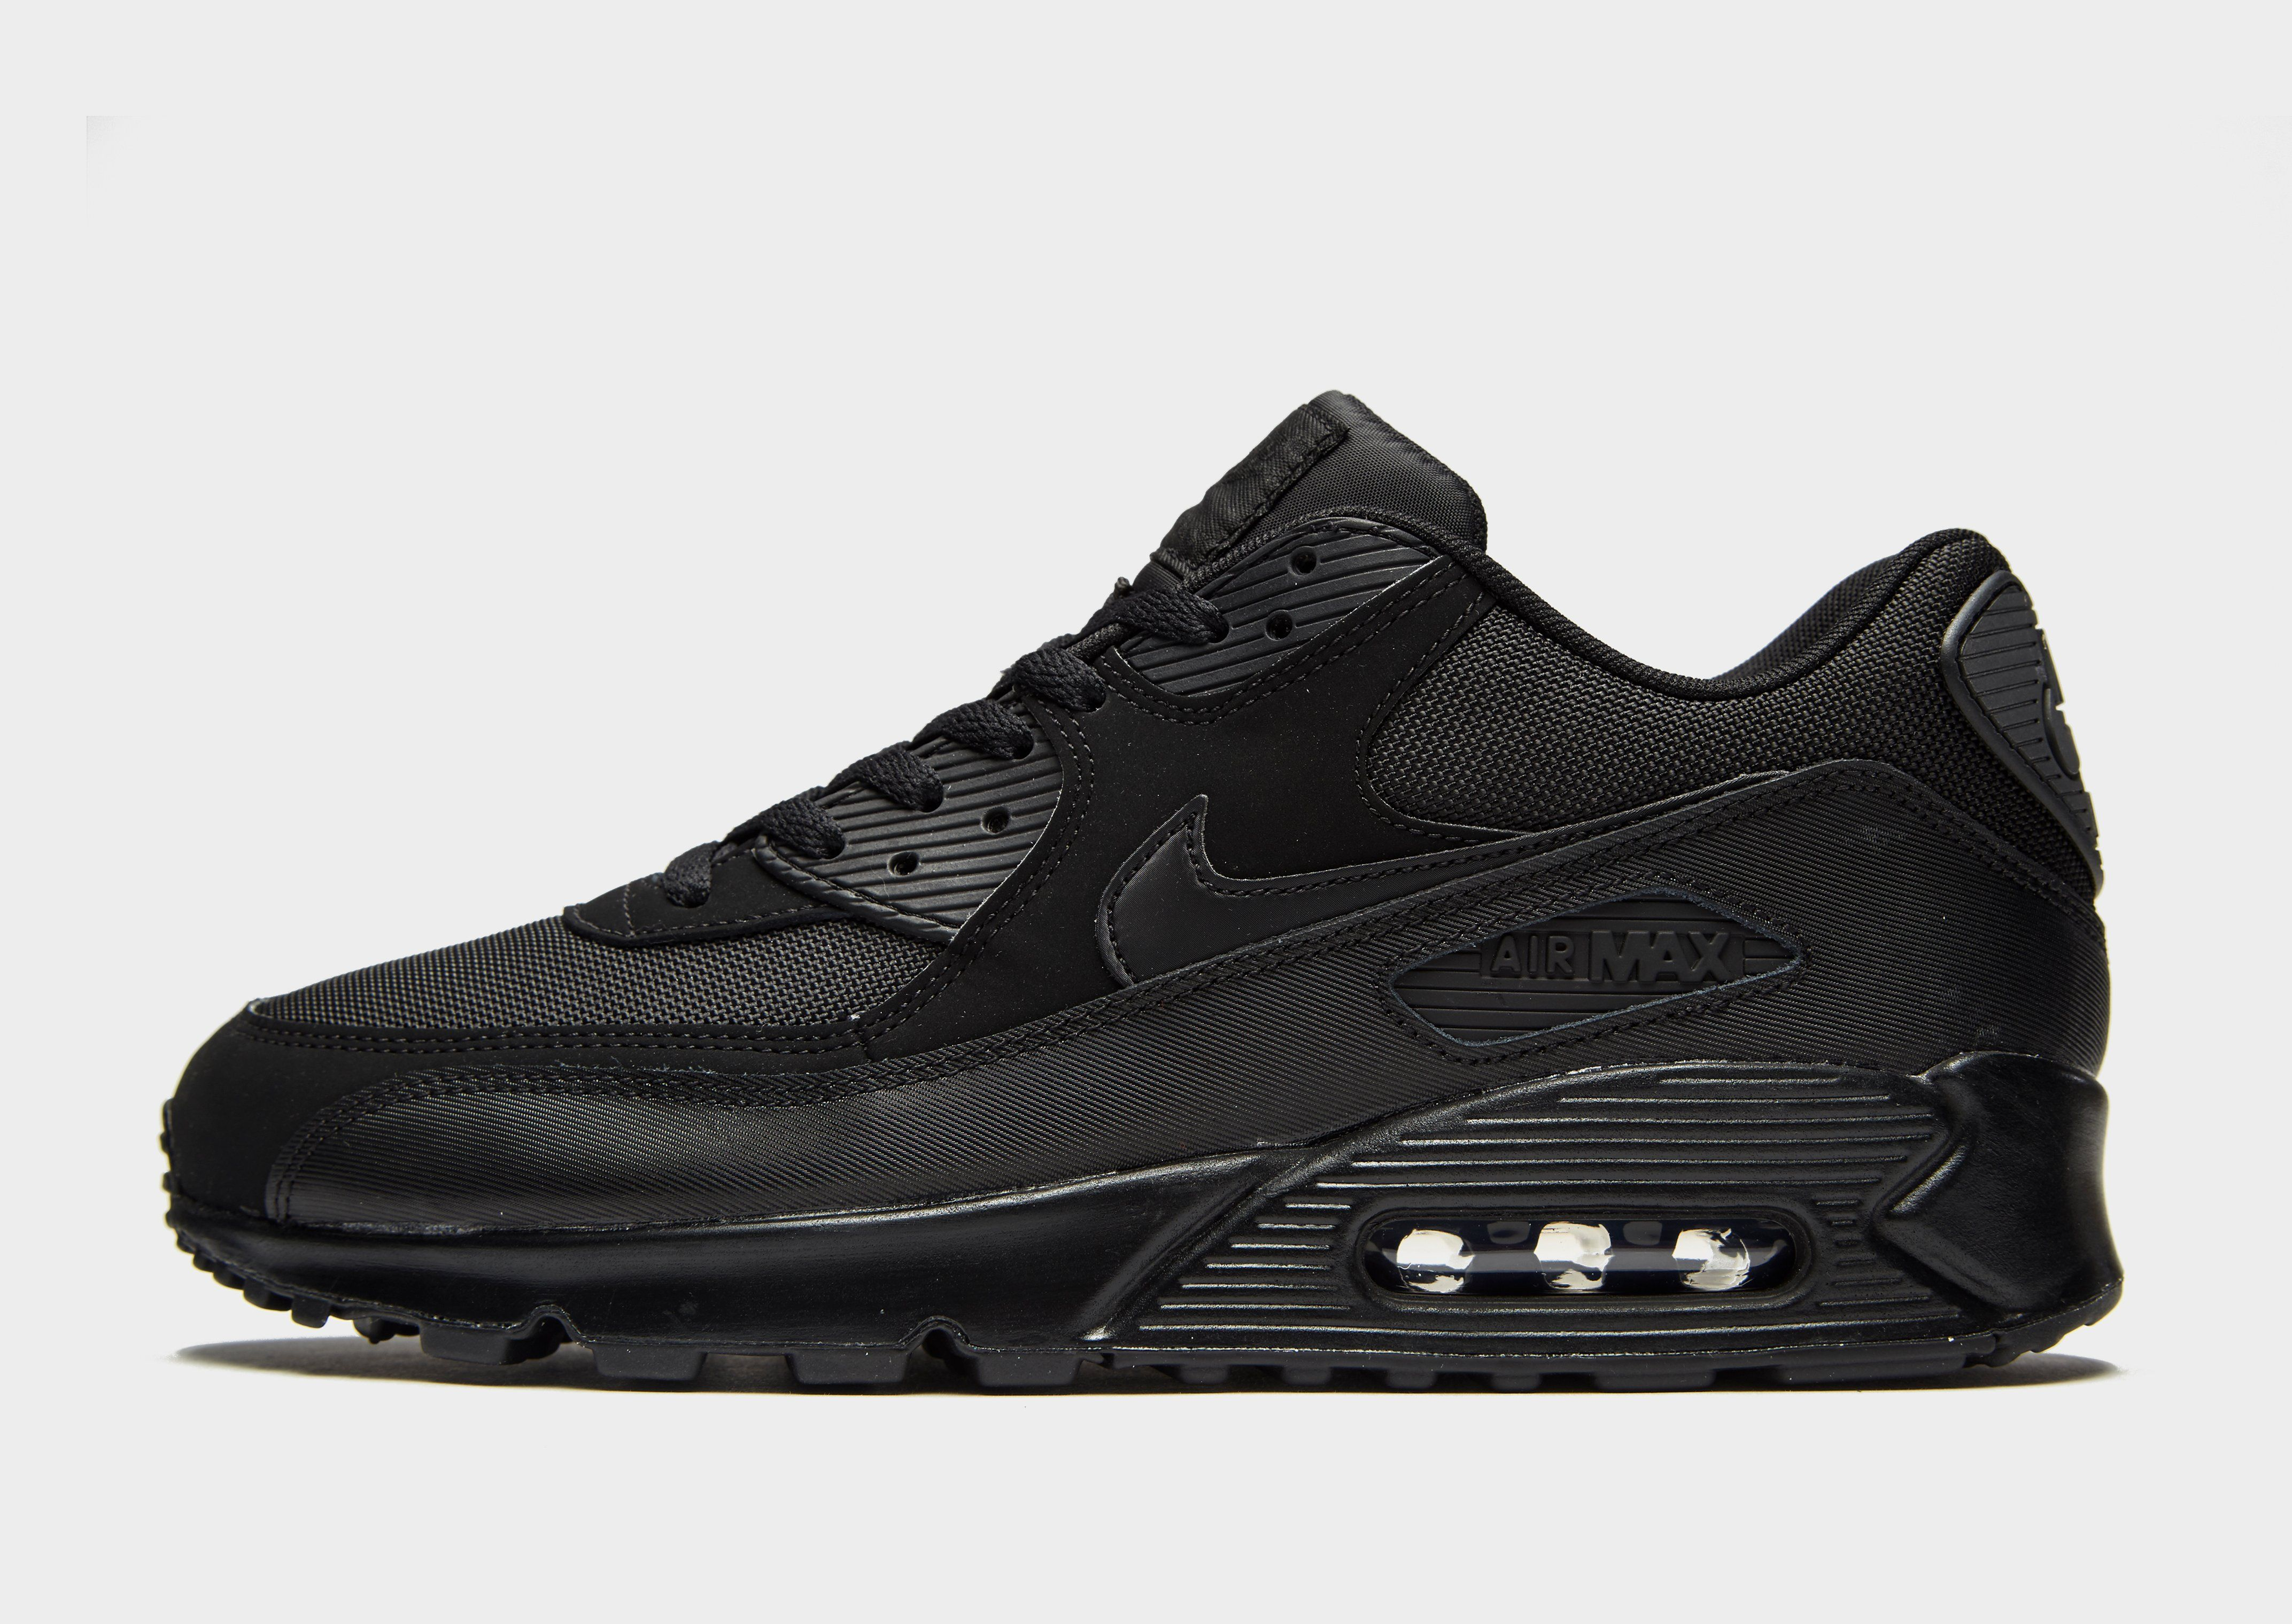 c4825628566 Mens Footwear - Nike Air Max 90